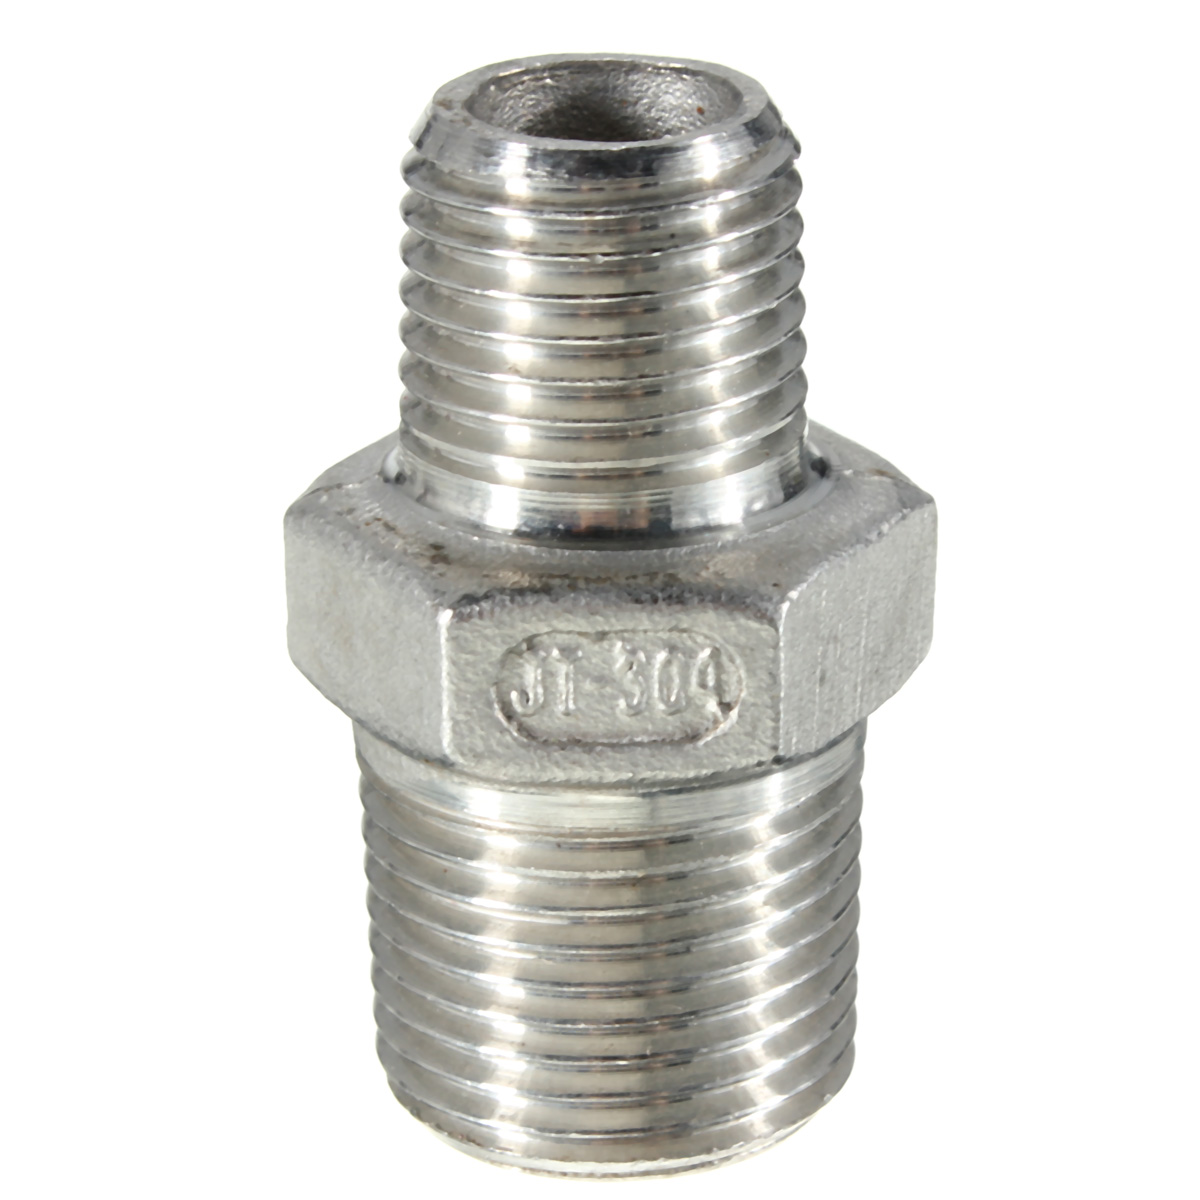 Stainless Steel 304 Male to Male Hex Nipple Threaded Reducer Pipe Fitting X